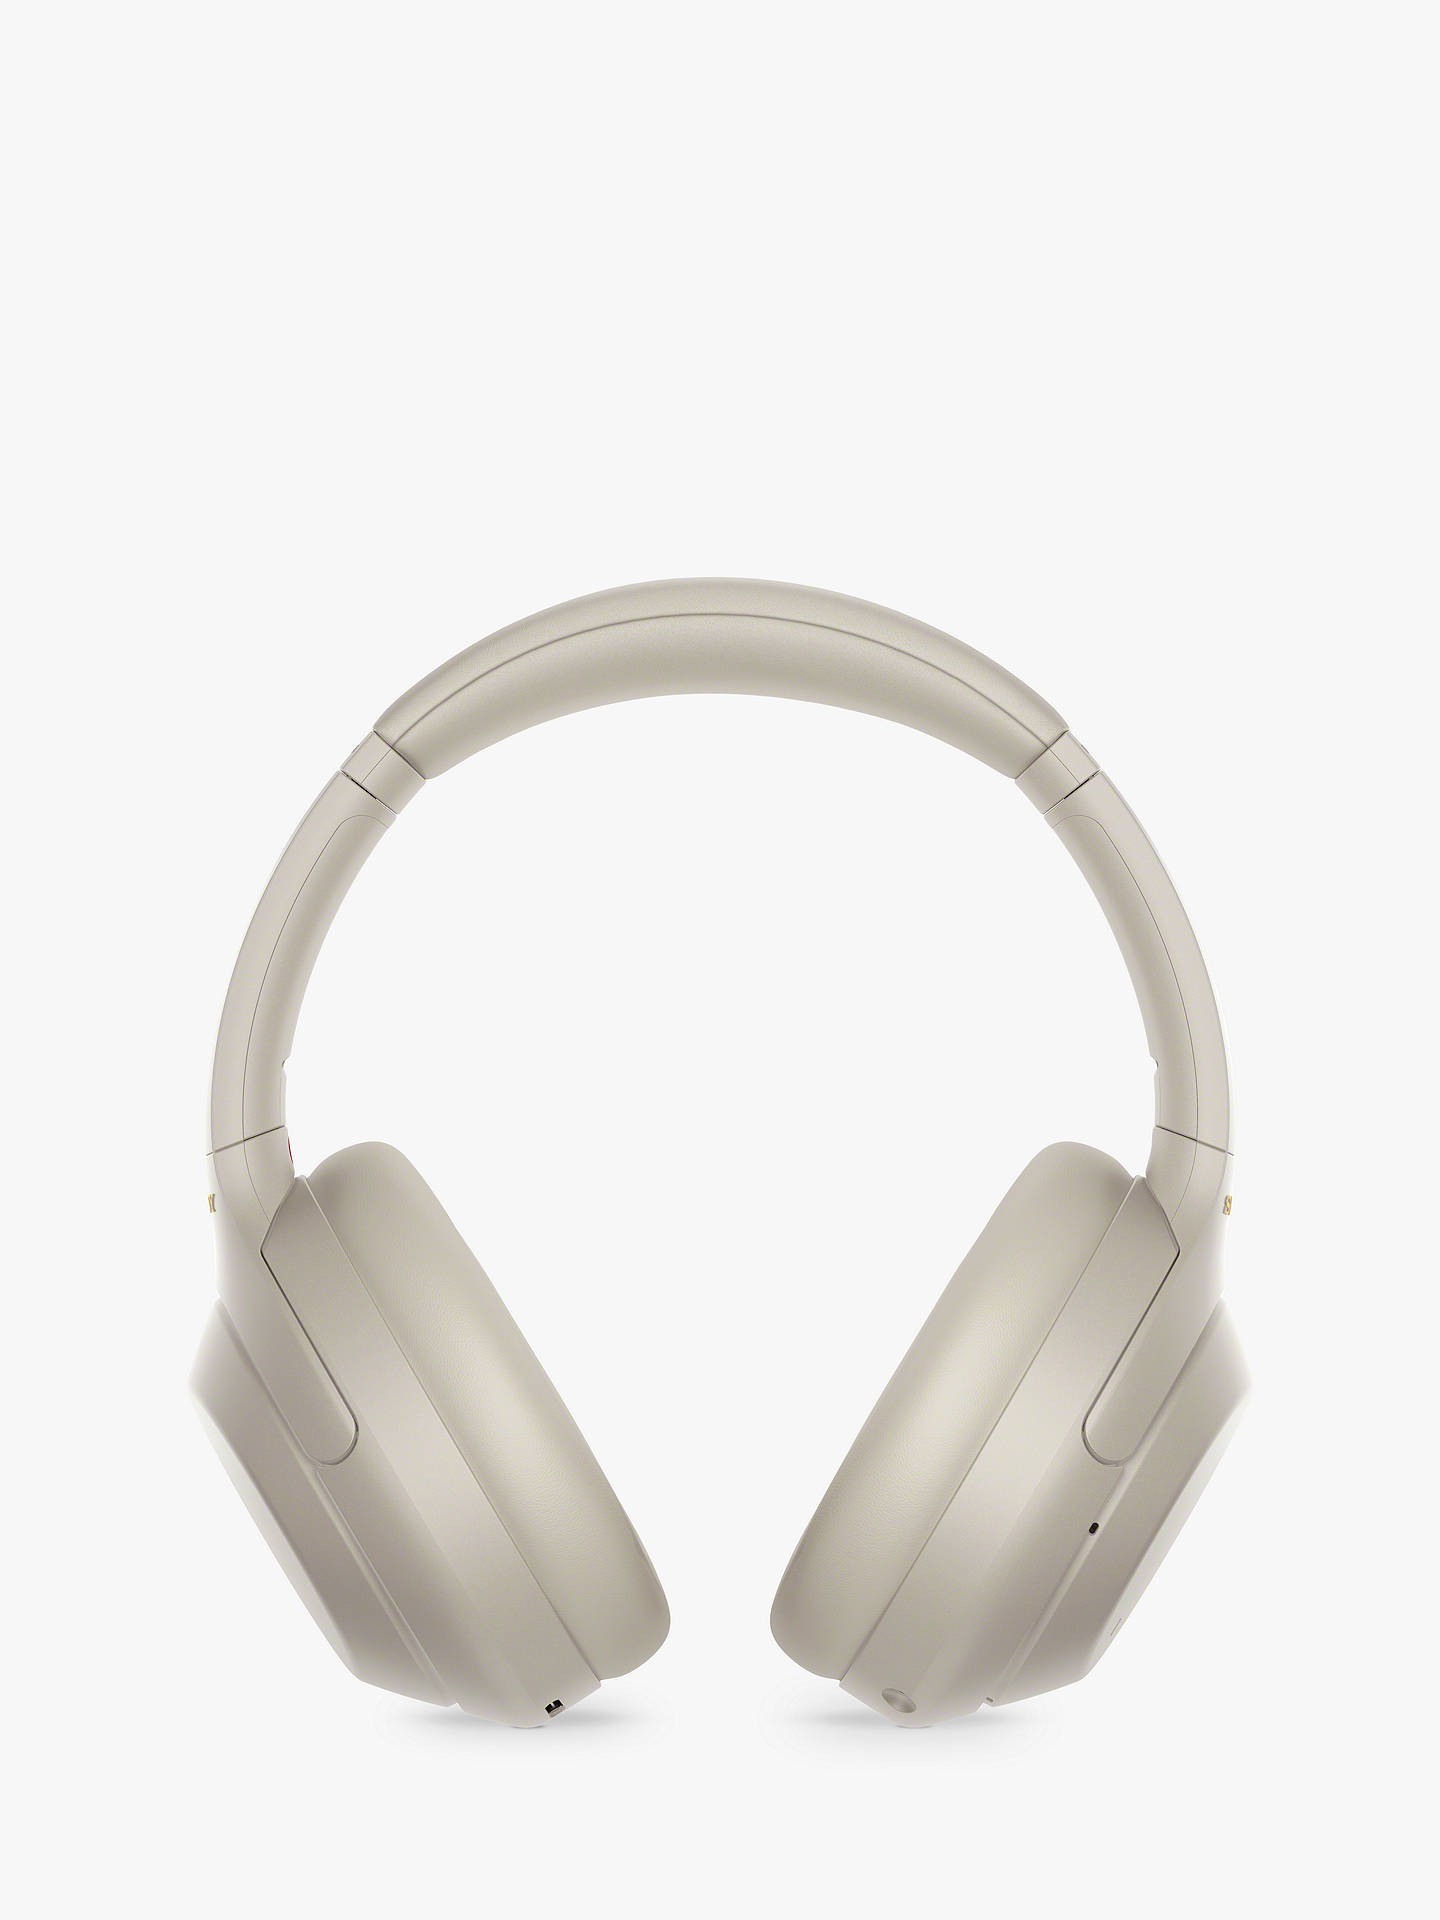 Buy Sony WH-1000XM4 Noise Cancelling Wireless Bluetooth NFC High Resolution Audio Over-Ear Headphones with Mic/Remote, Silver Online at johnlewis.com